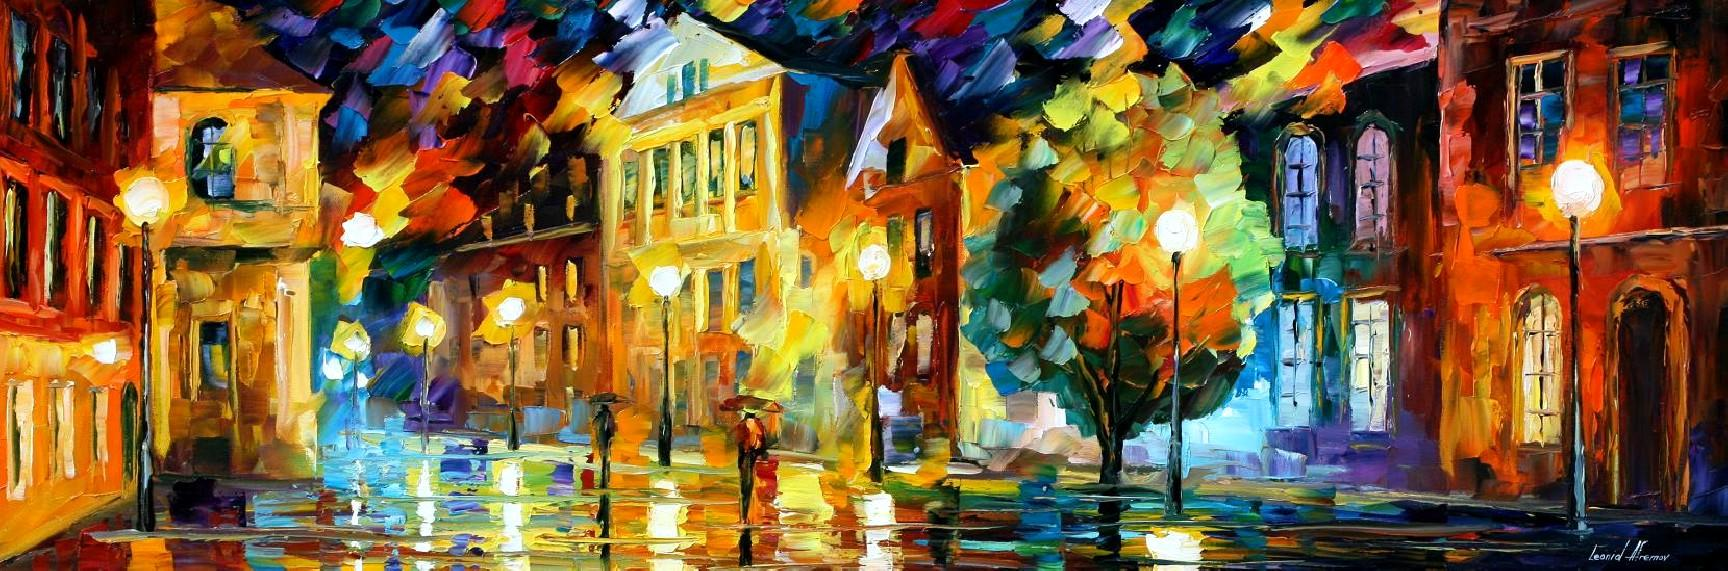 Modern impressionism palette knife oil painting City048